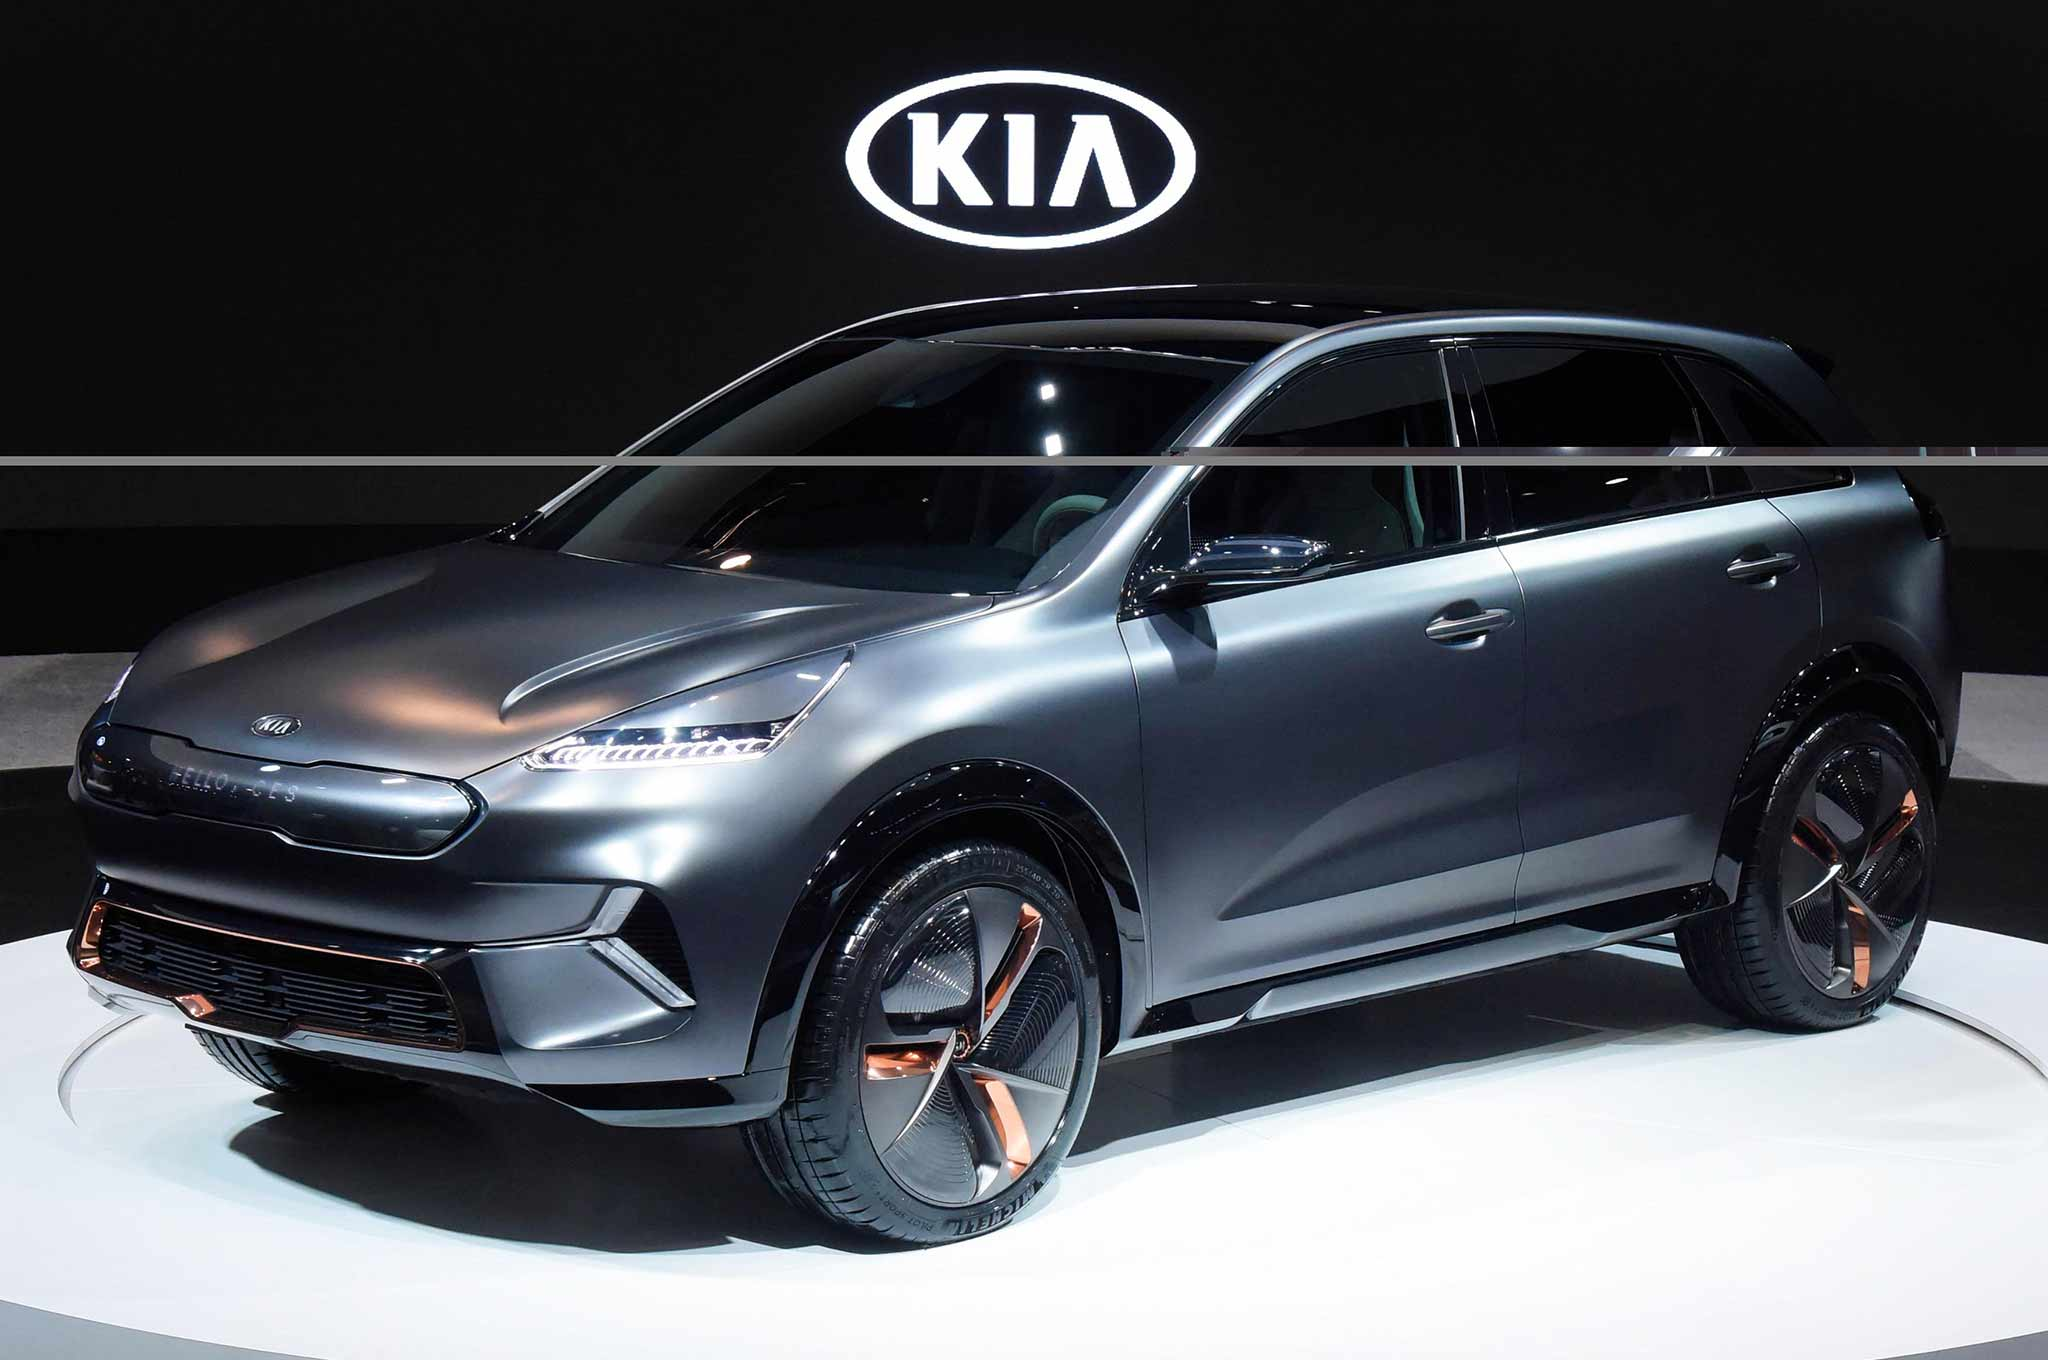 Kia Niro EV Concept makes its debut at 2018 CES